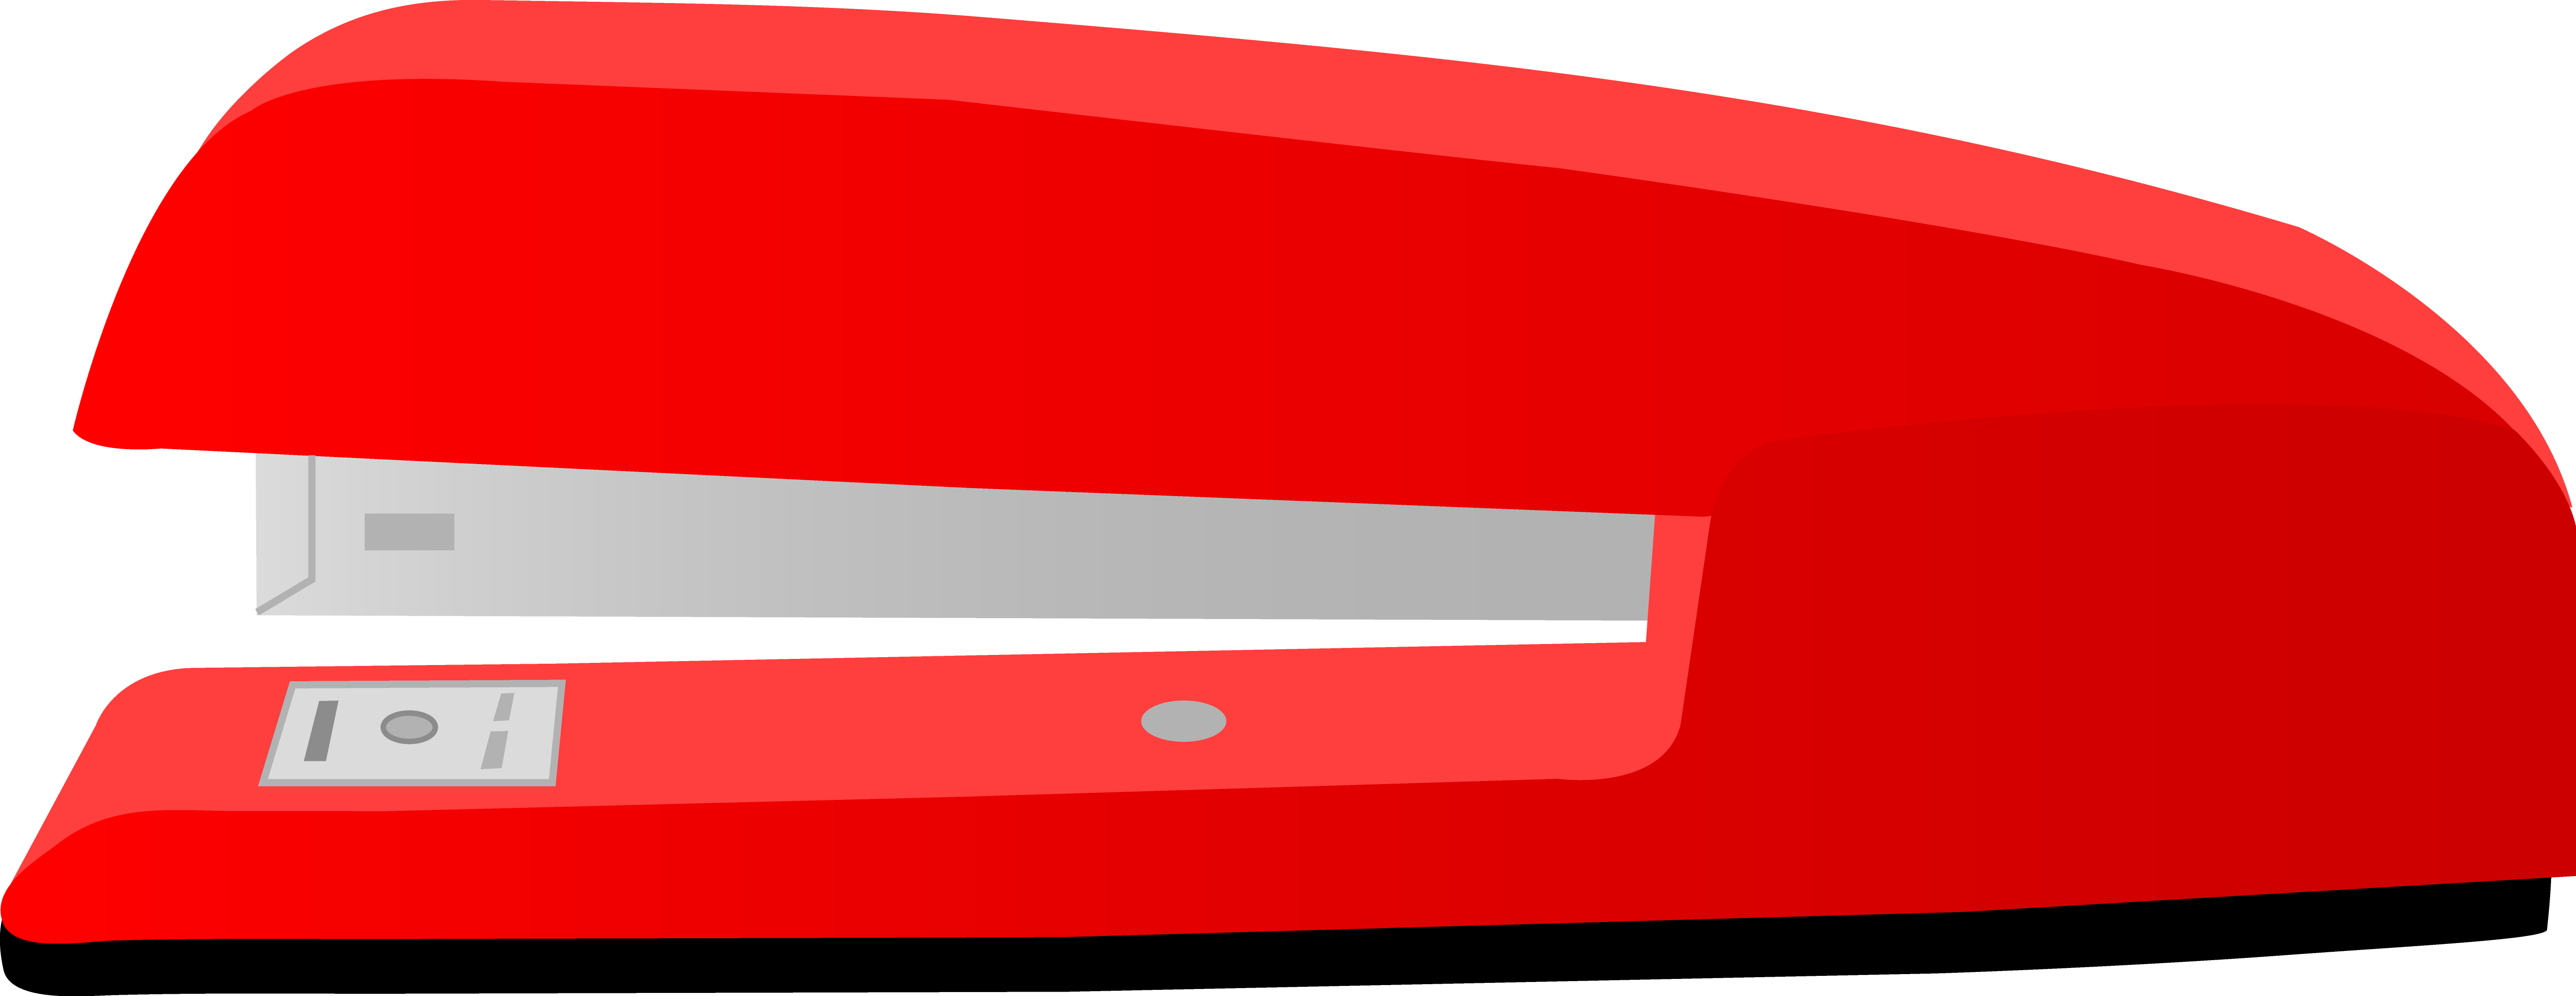 Paper clipart stapled. Large red office desk